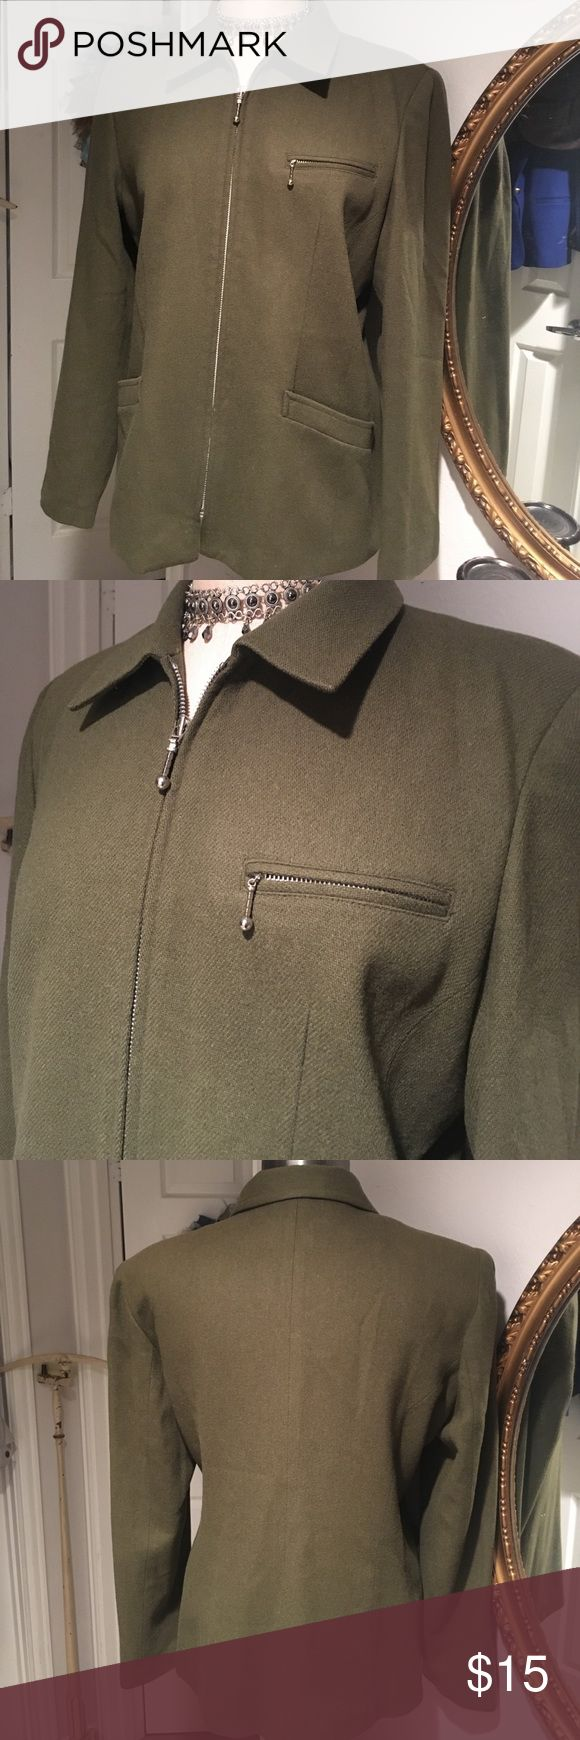 Laura Scott Olive Green Wool Blazer Sporty/Dressy zip front Blazer Laura Scott Jackets & Coats Blazers